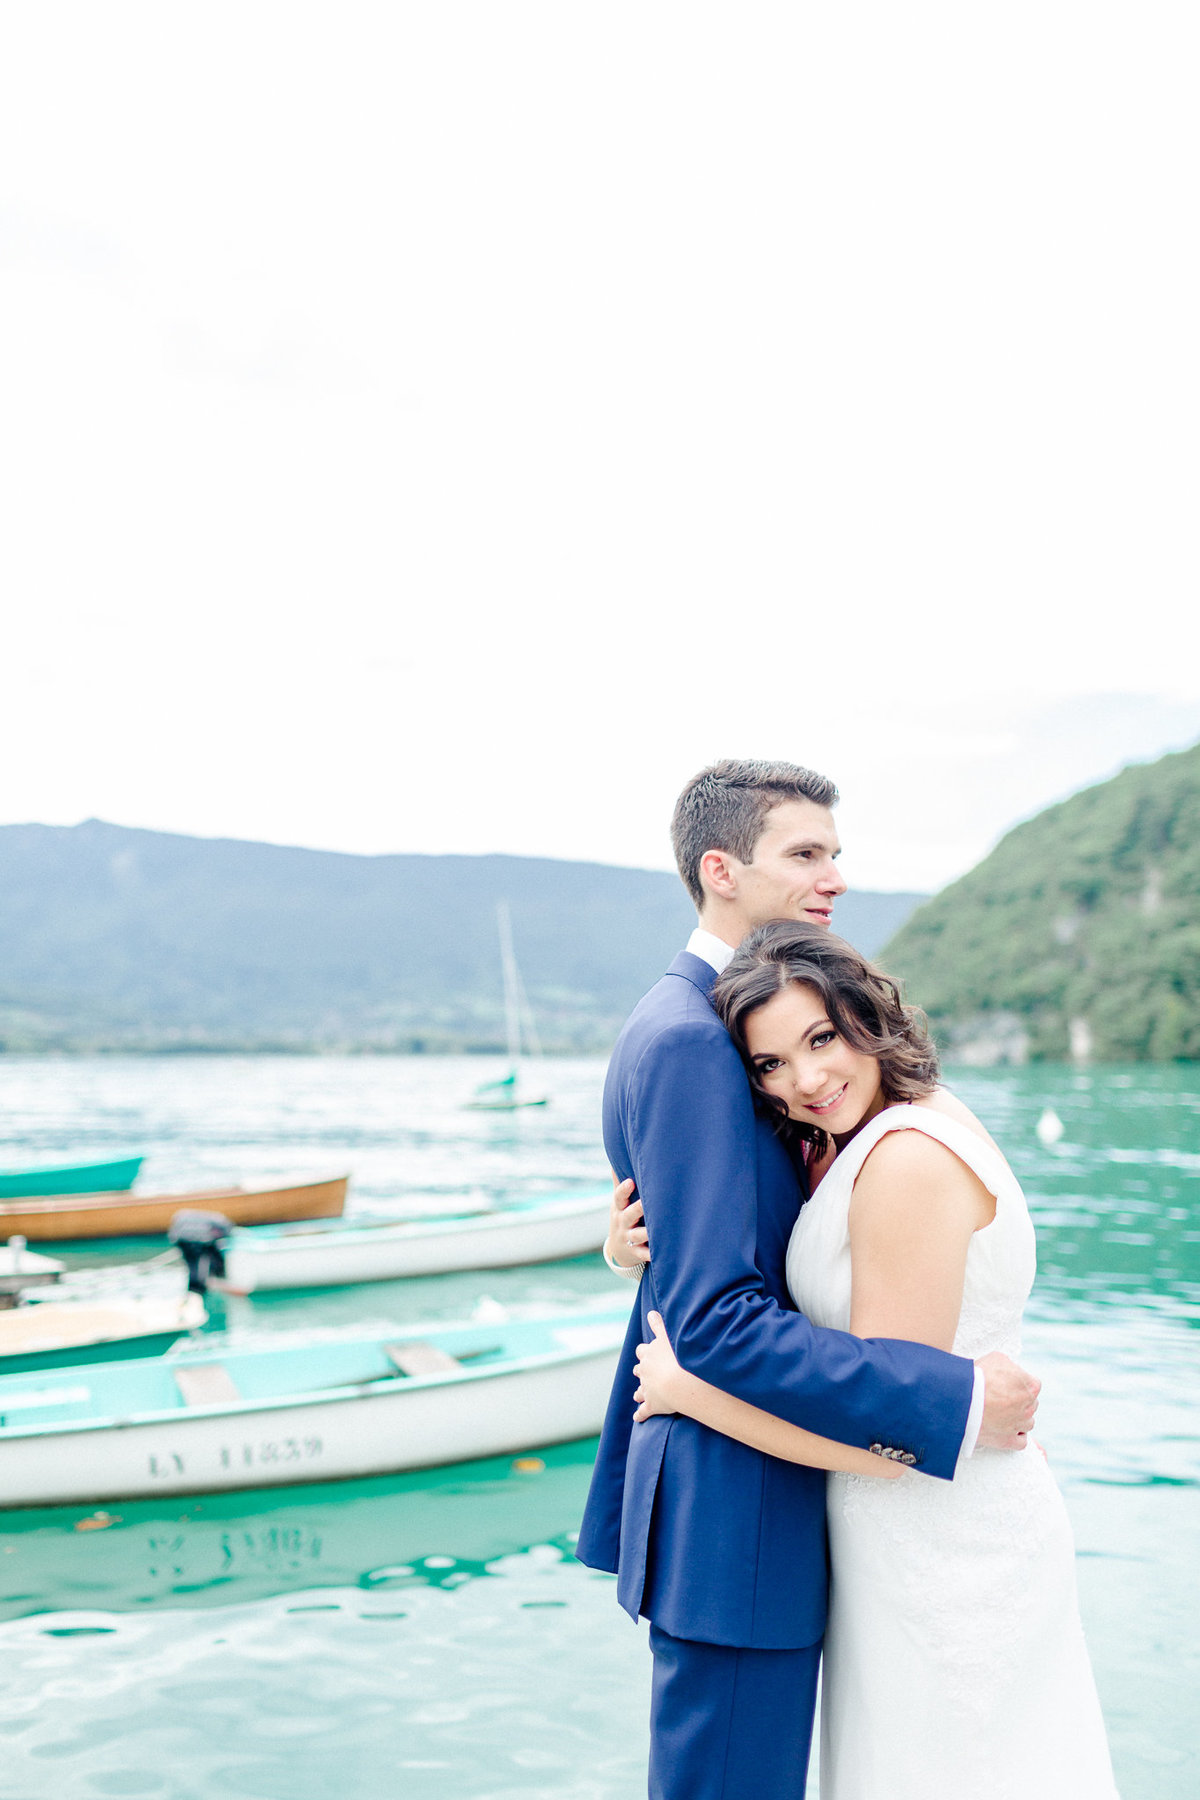 photographe-mariage-talloires-france-lisa-renault-photographie-wedding-destination-photographer-50